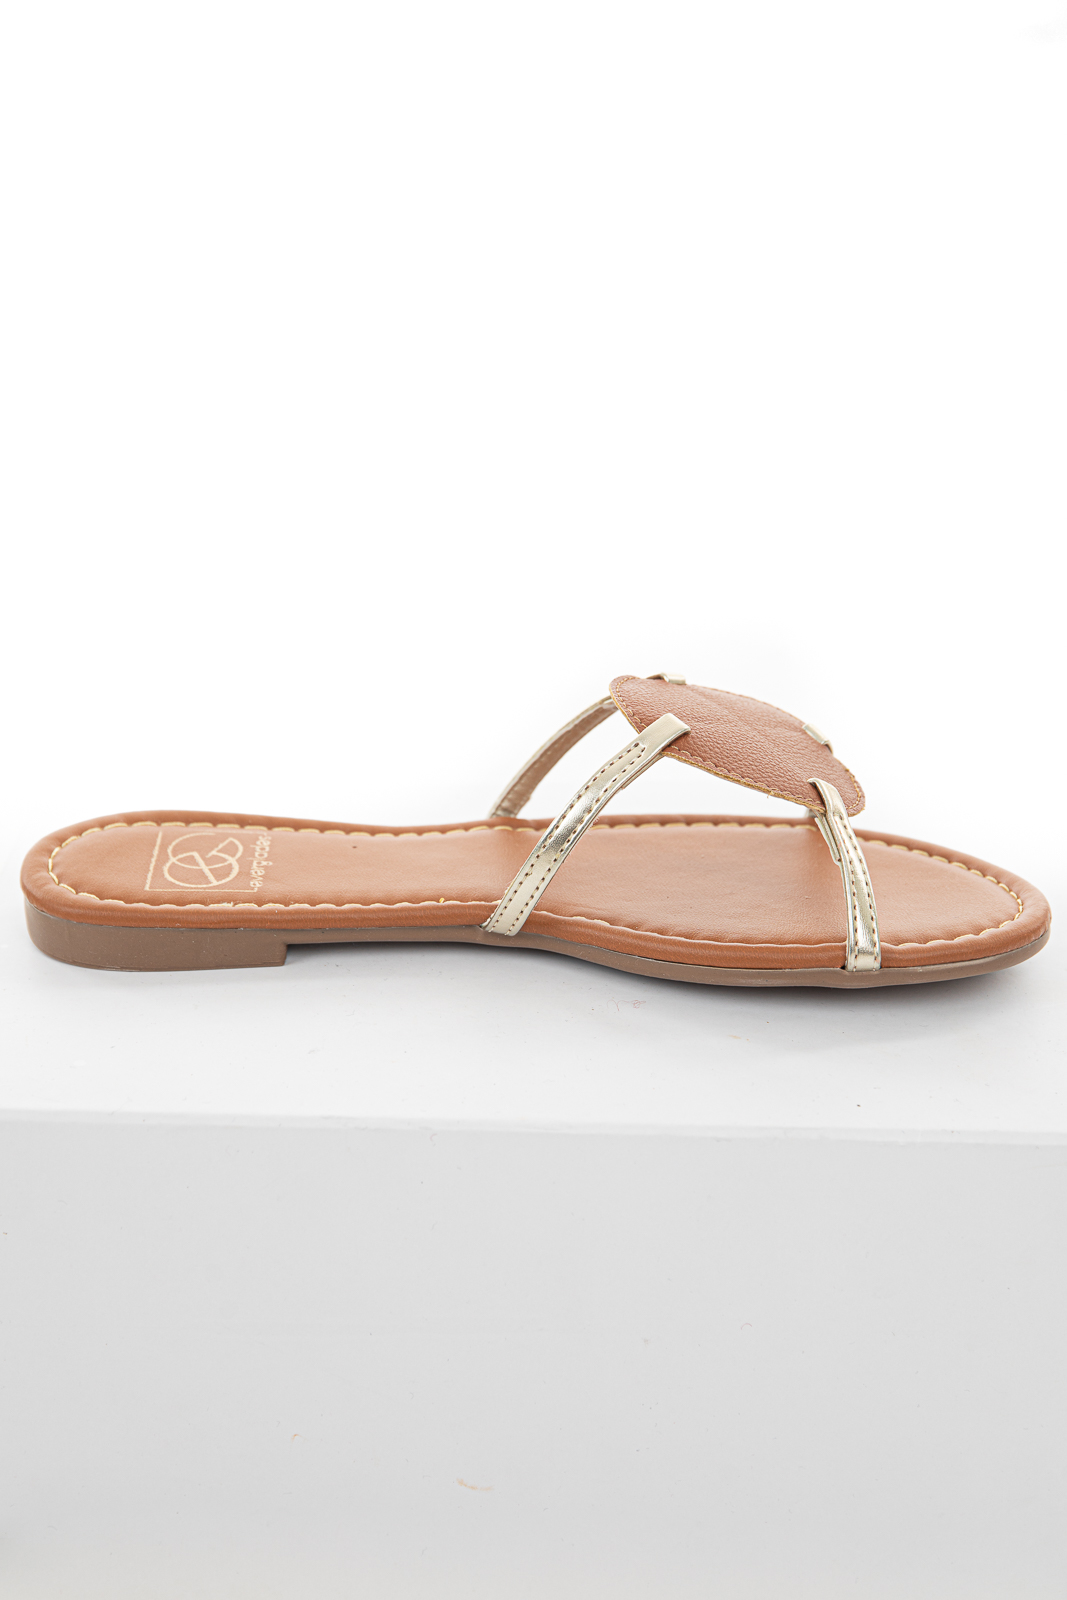 Sienna and Gold Circle Detail Slip On Sandals